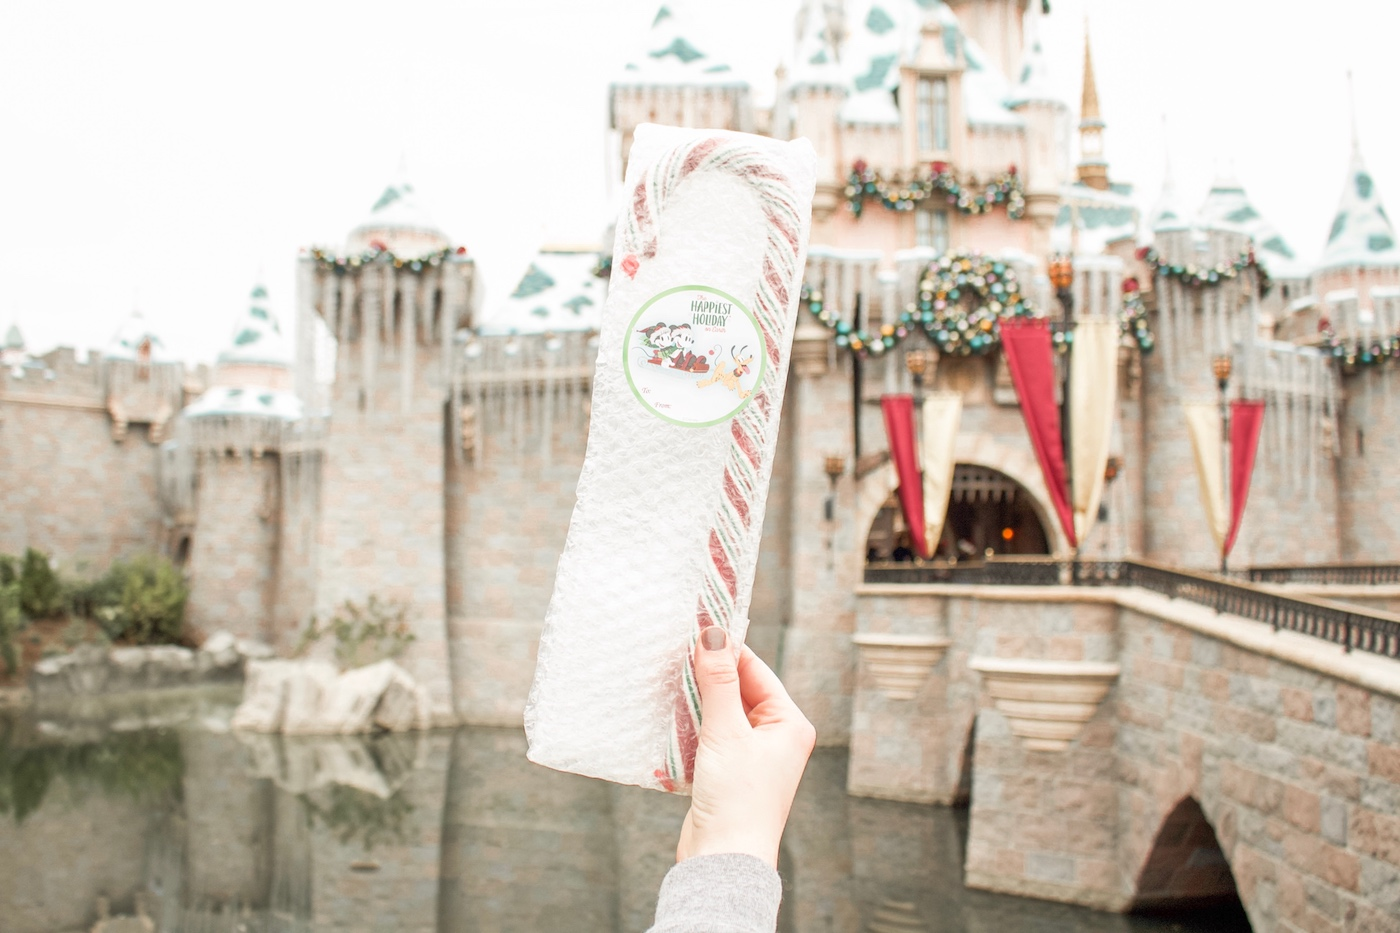 Disneyland Candy Cane guide